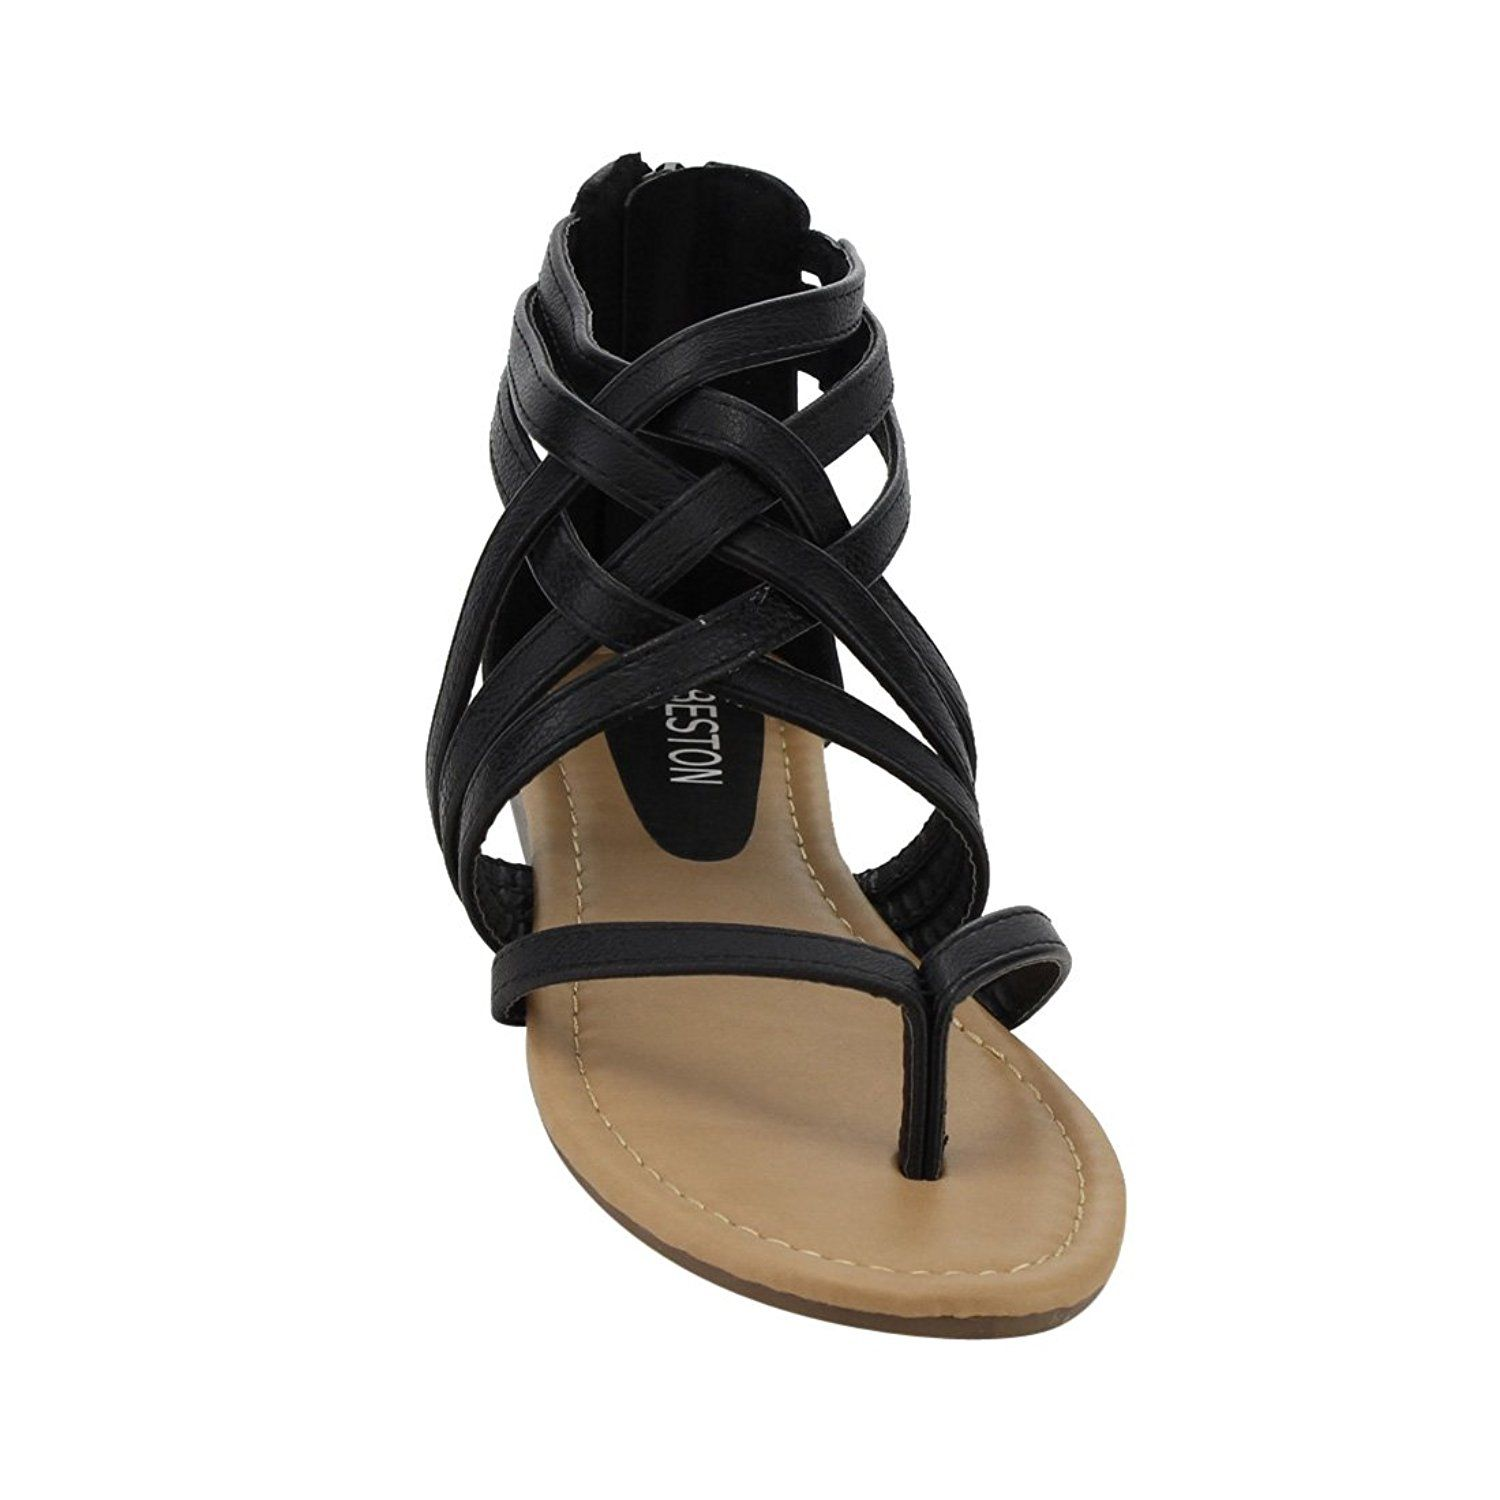 5770b842dbd Beston ID69 Women s Gladiator Caged Strappy Back Zipper Thong Flat Sandal      Check out